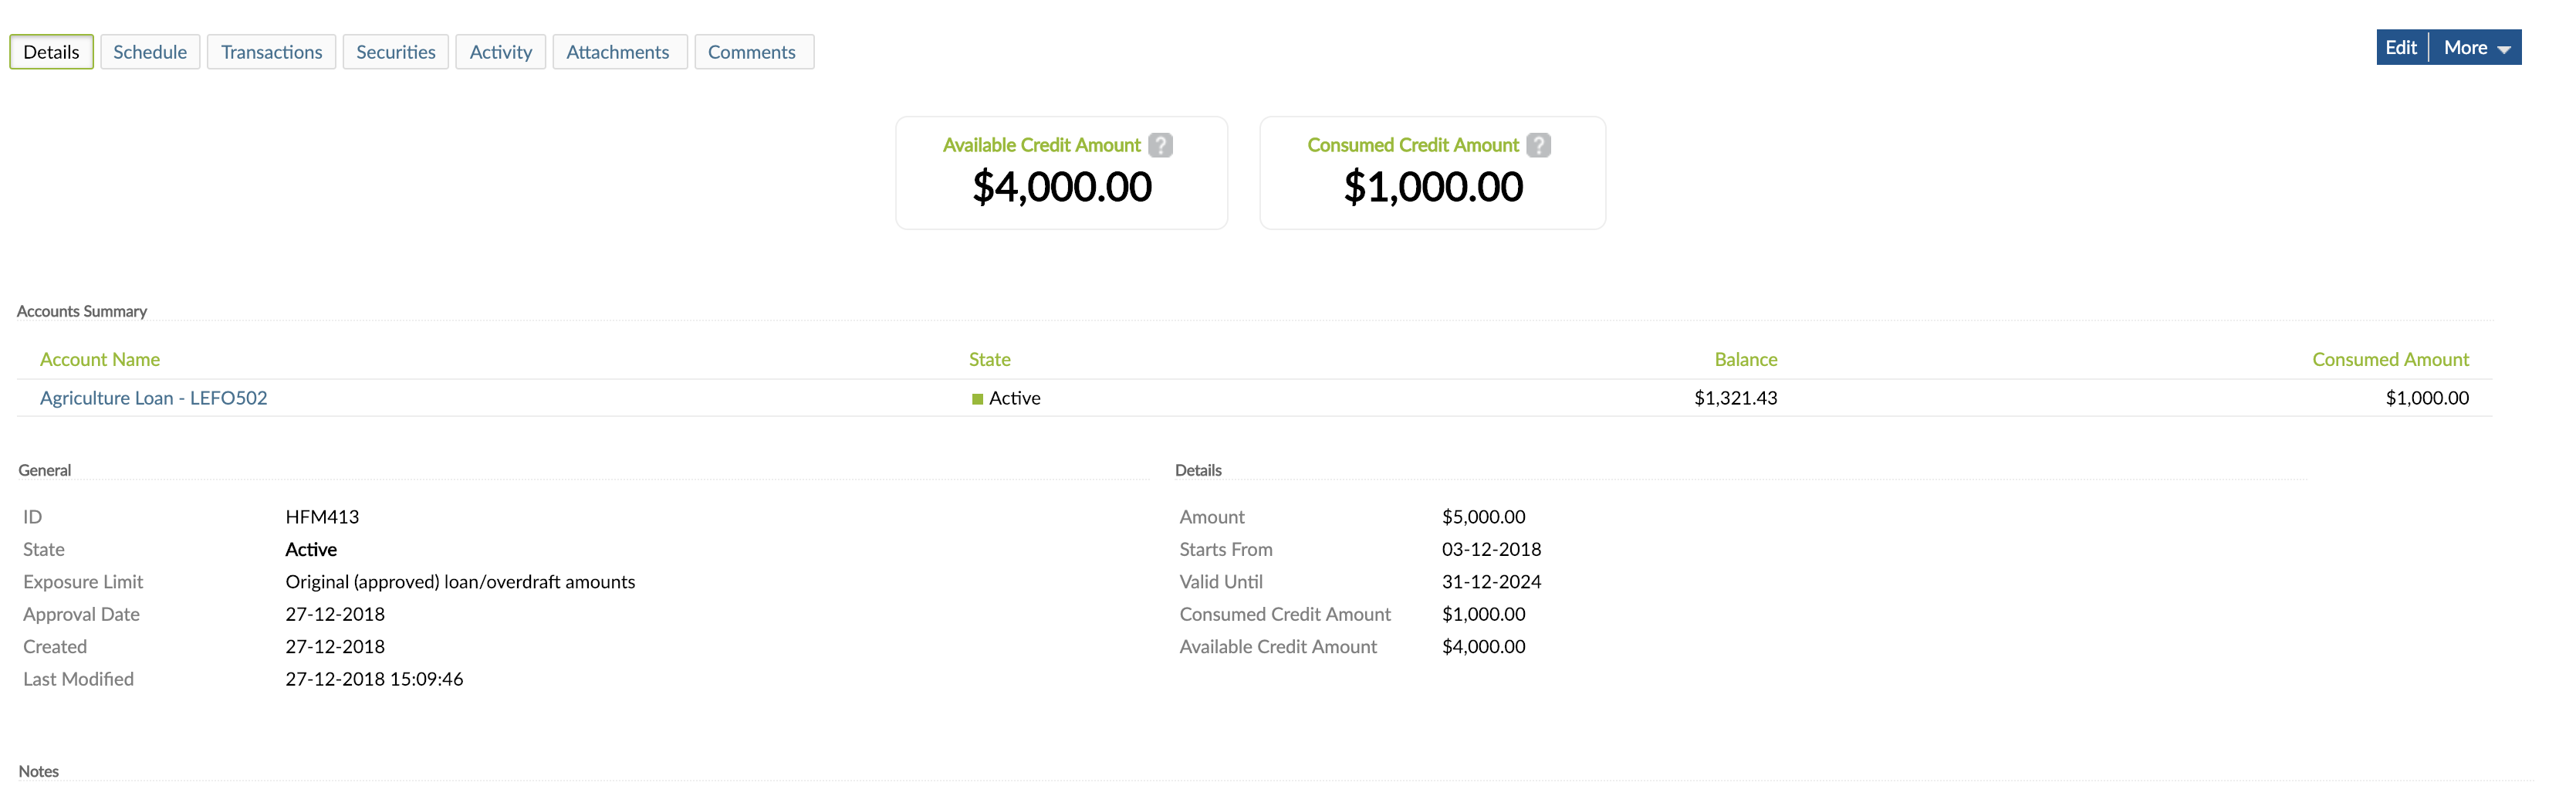 Credit Arrangement view from Details tab